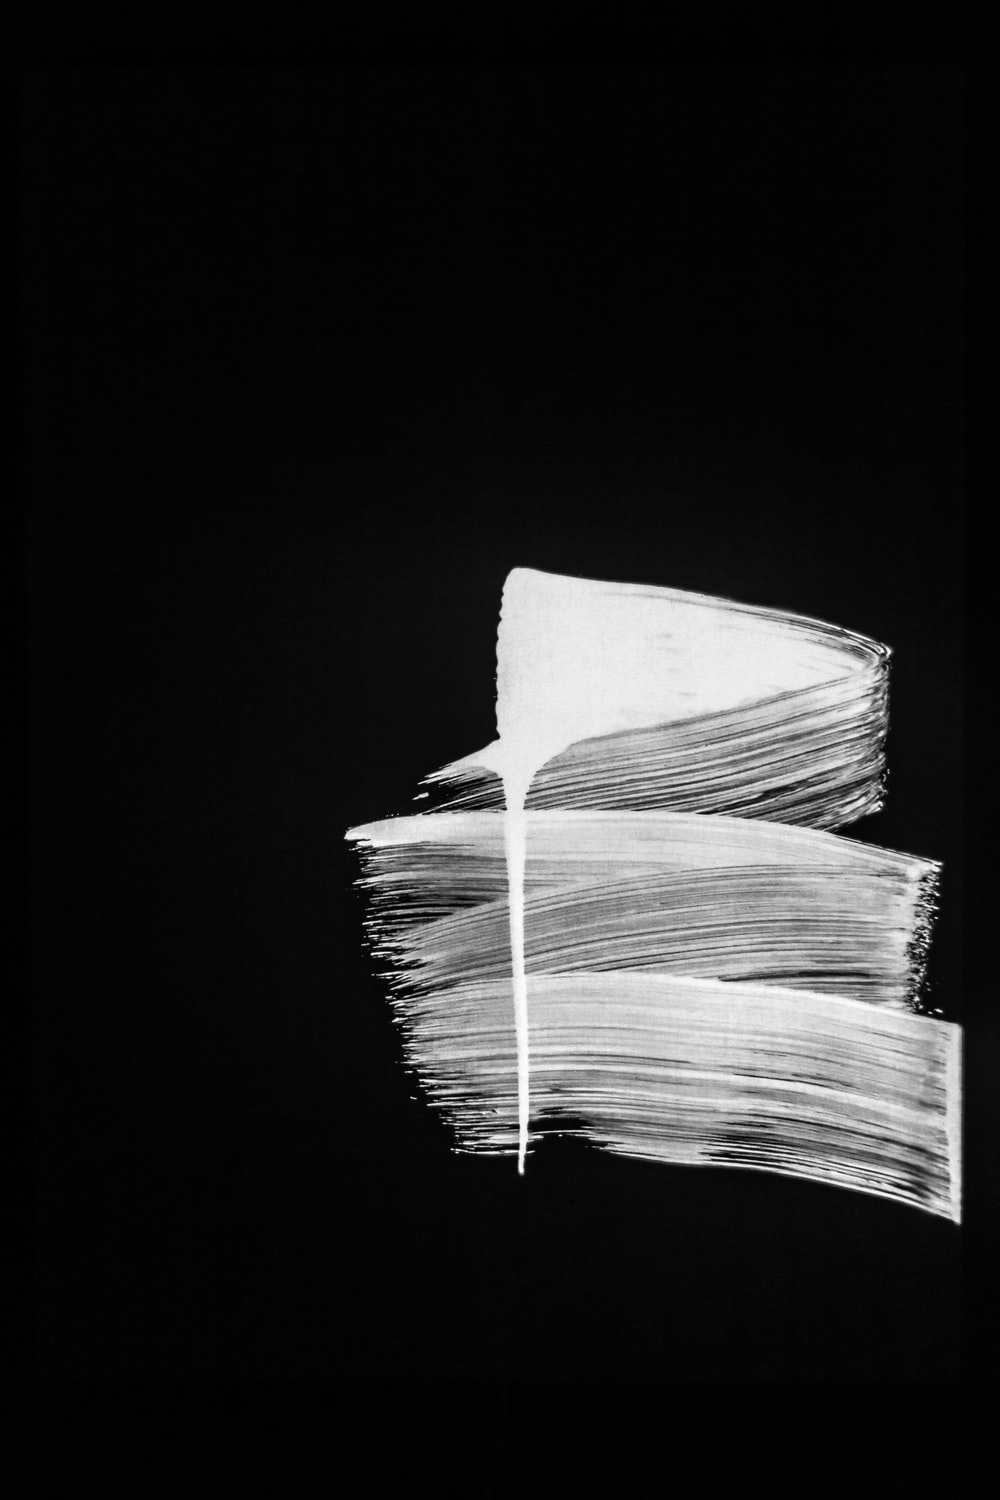 white paper with black background